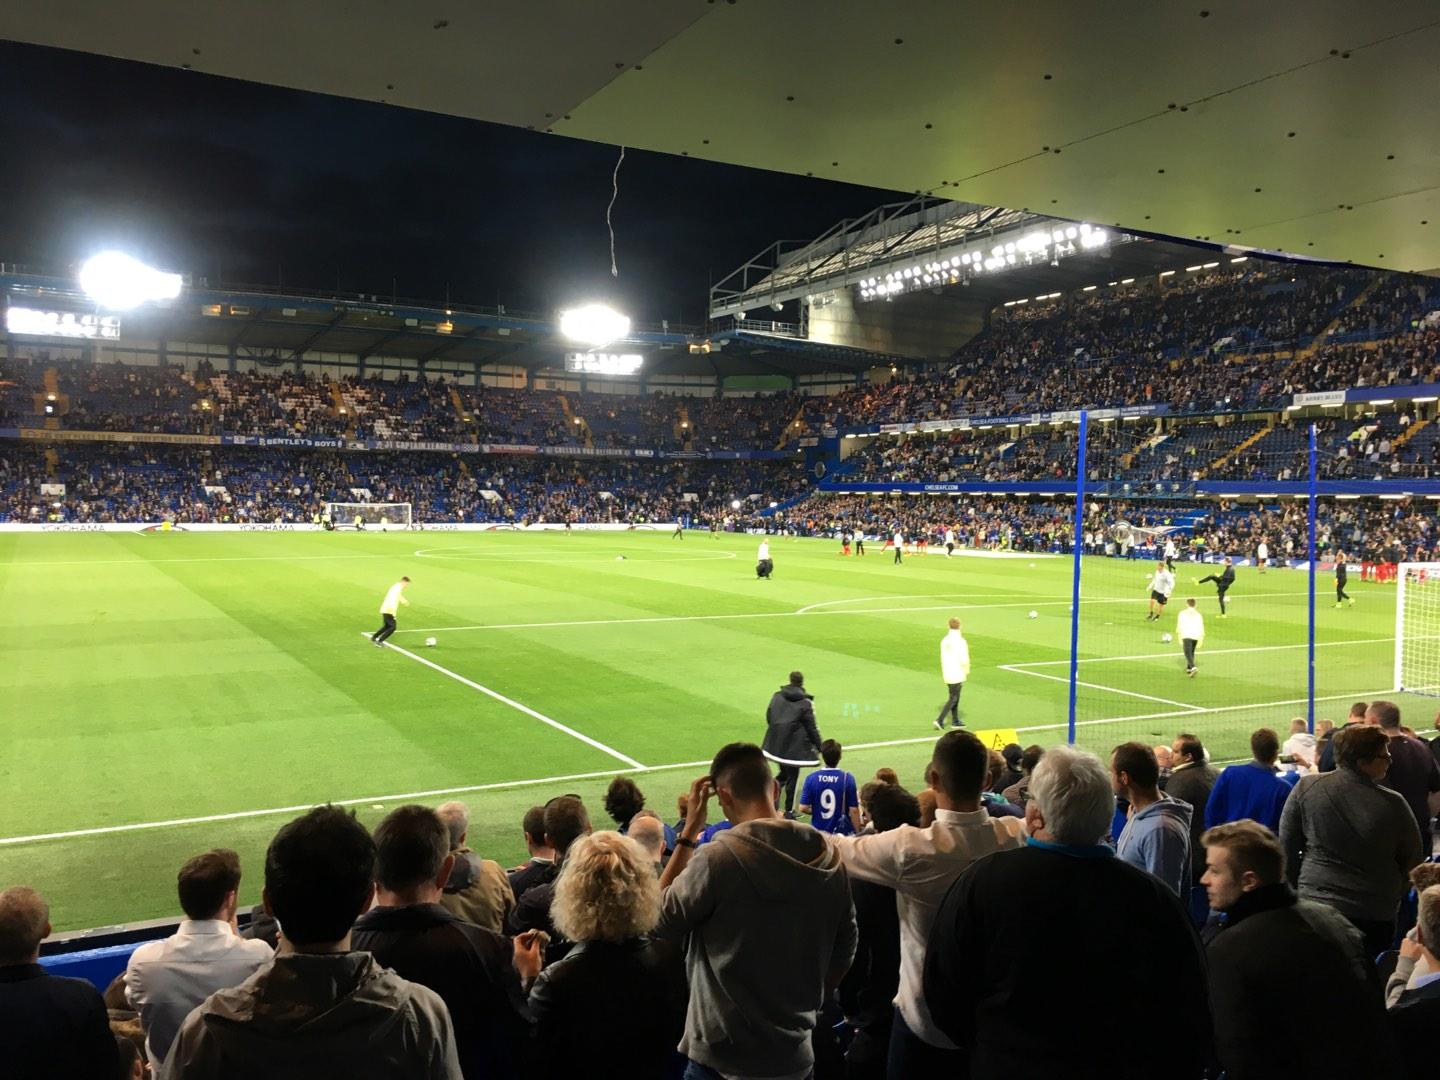 Stamford Bridge Section Shed End Lower 6 Row 13 Seat 164